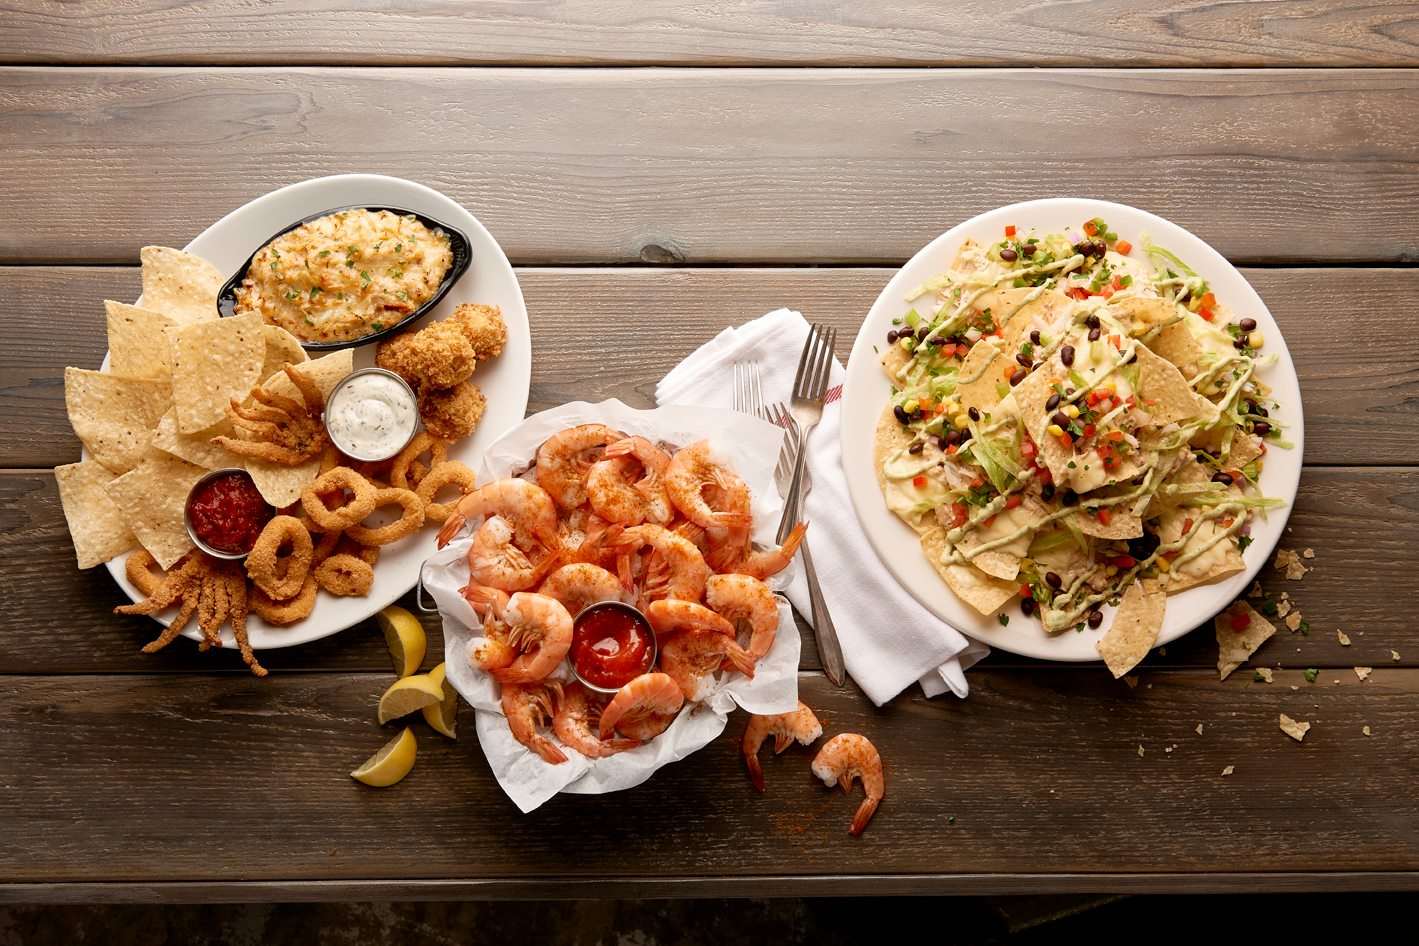 Dishes from Joe's Crab Shack